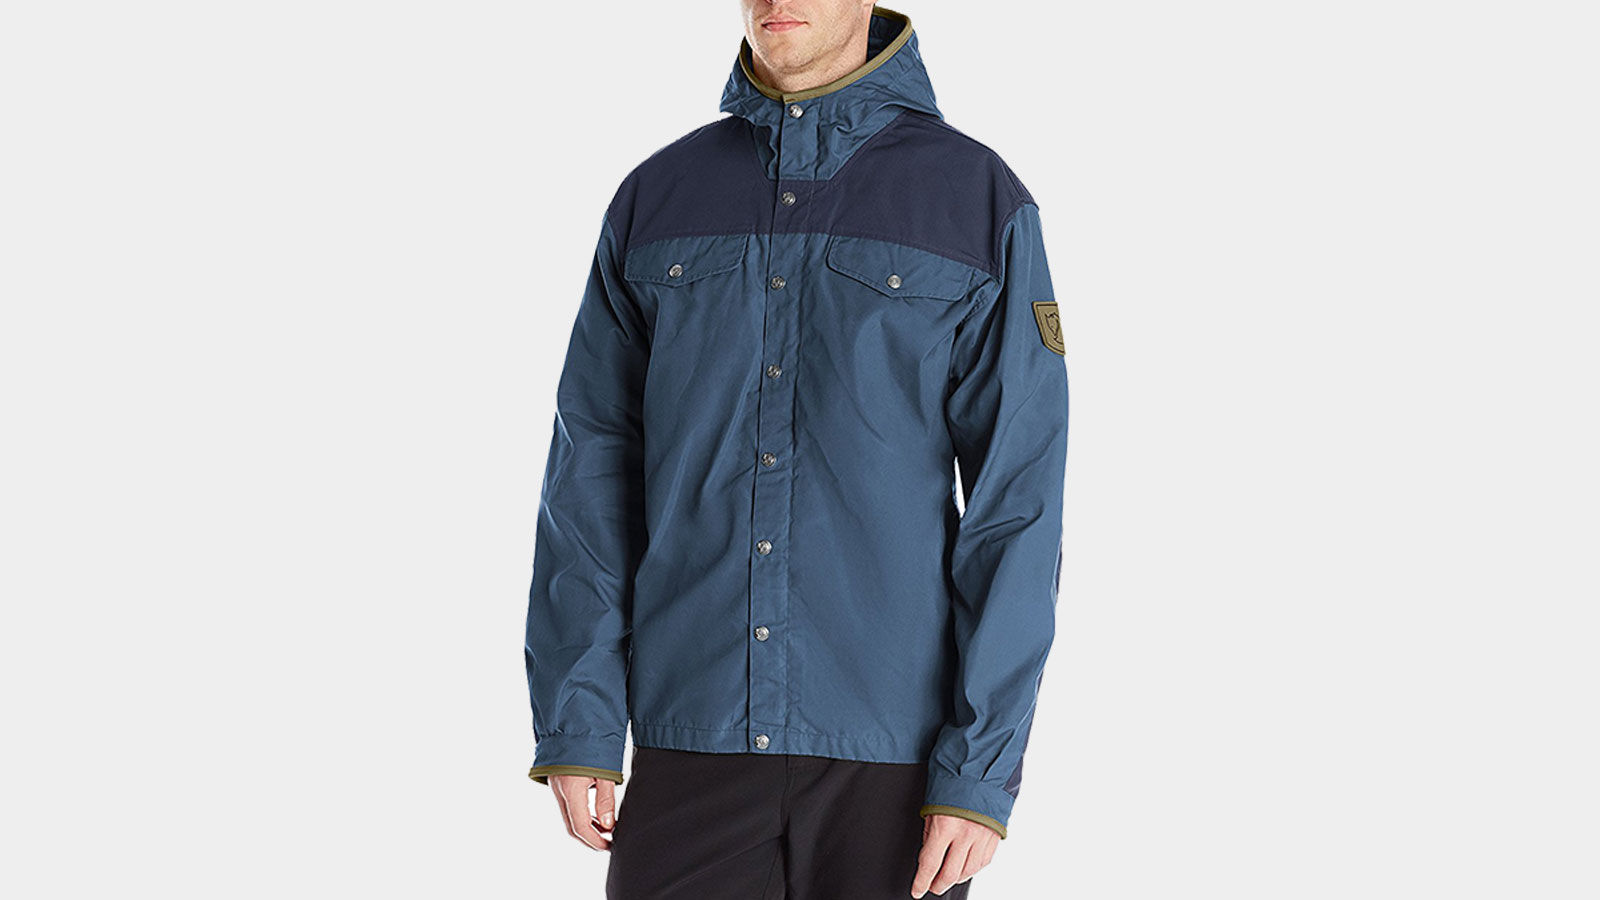 Best Mens Winter Coats For Extreme Cold - Tradingbasis